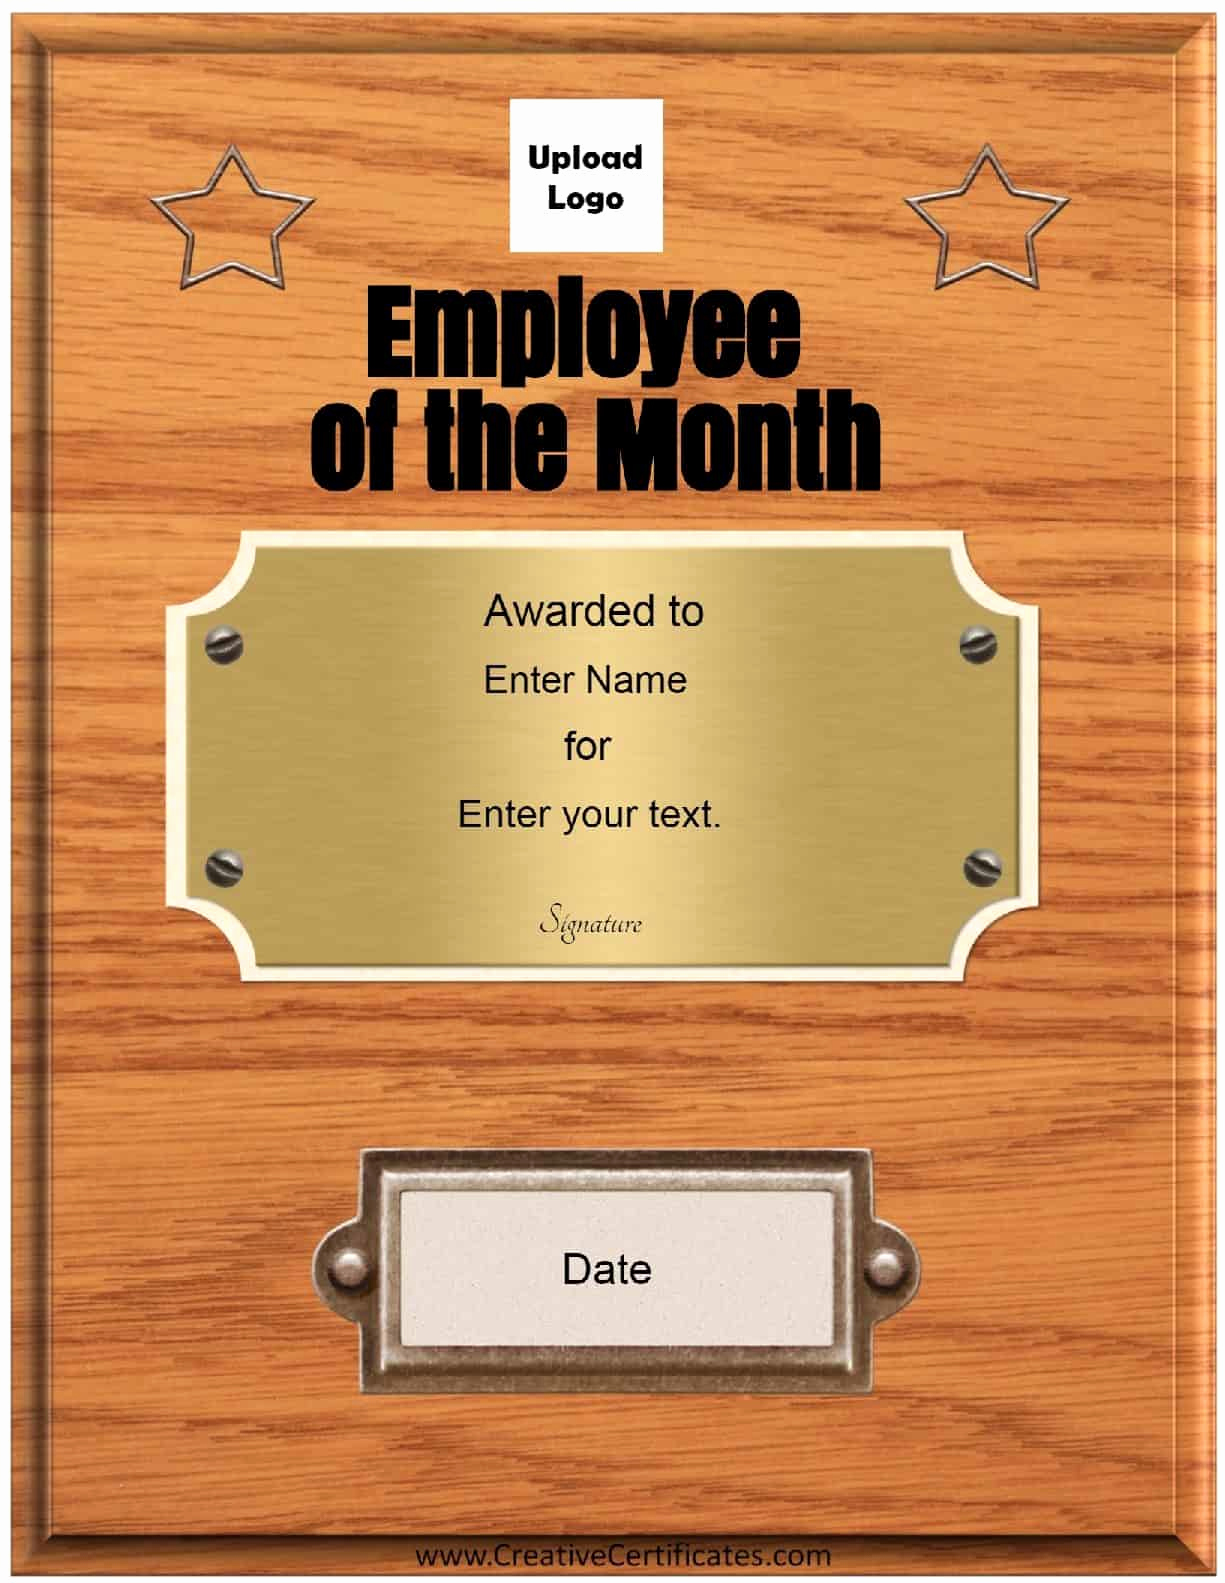 Employee Of the Month Template Luxury Free Custom Employee Of the Month Certificate